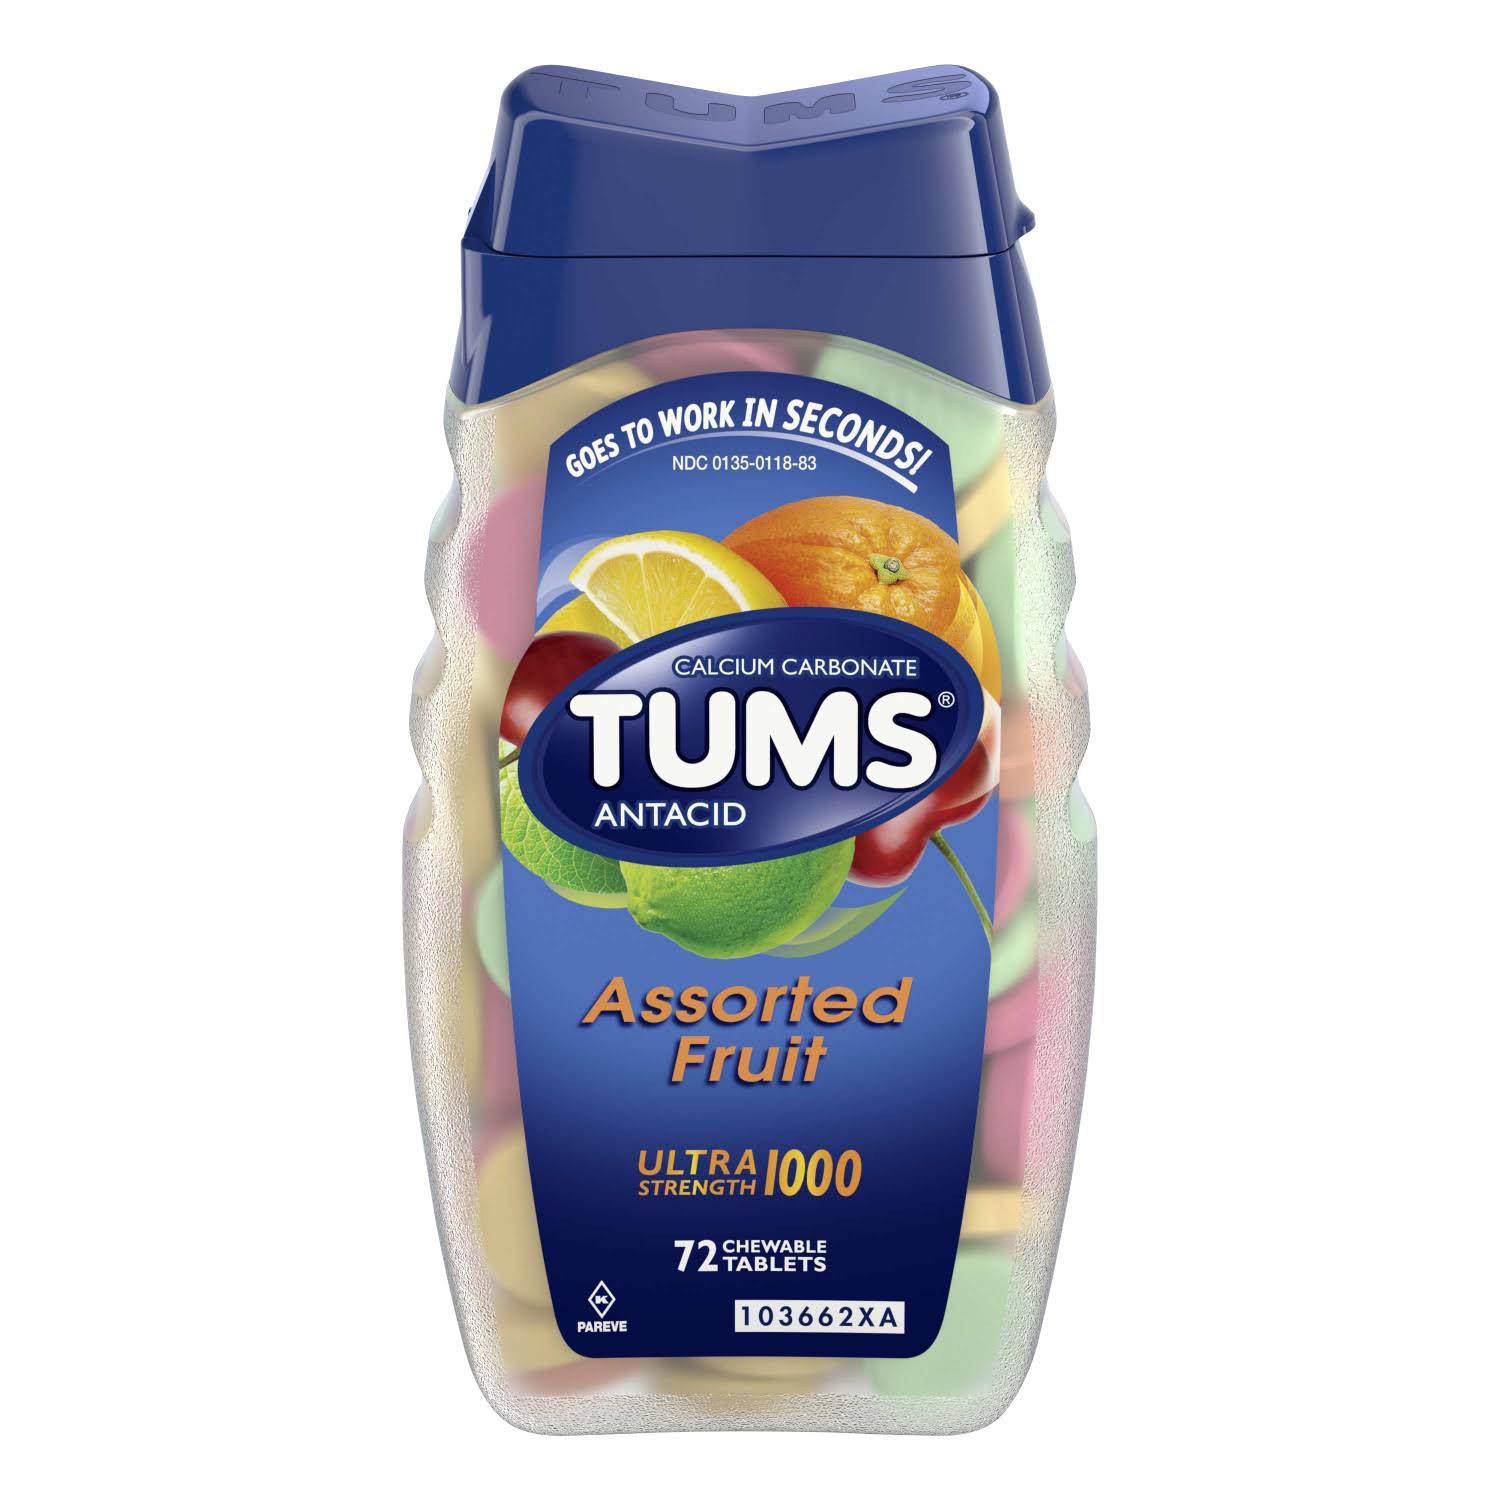 Tums Antacid Ultra Strength 1000 Antacid - Assorted Fruit, 72 Chewable Tablets